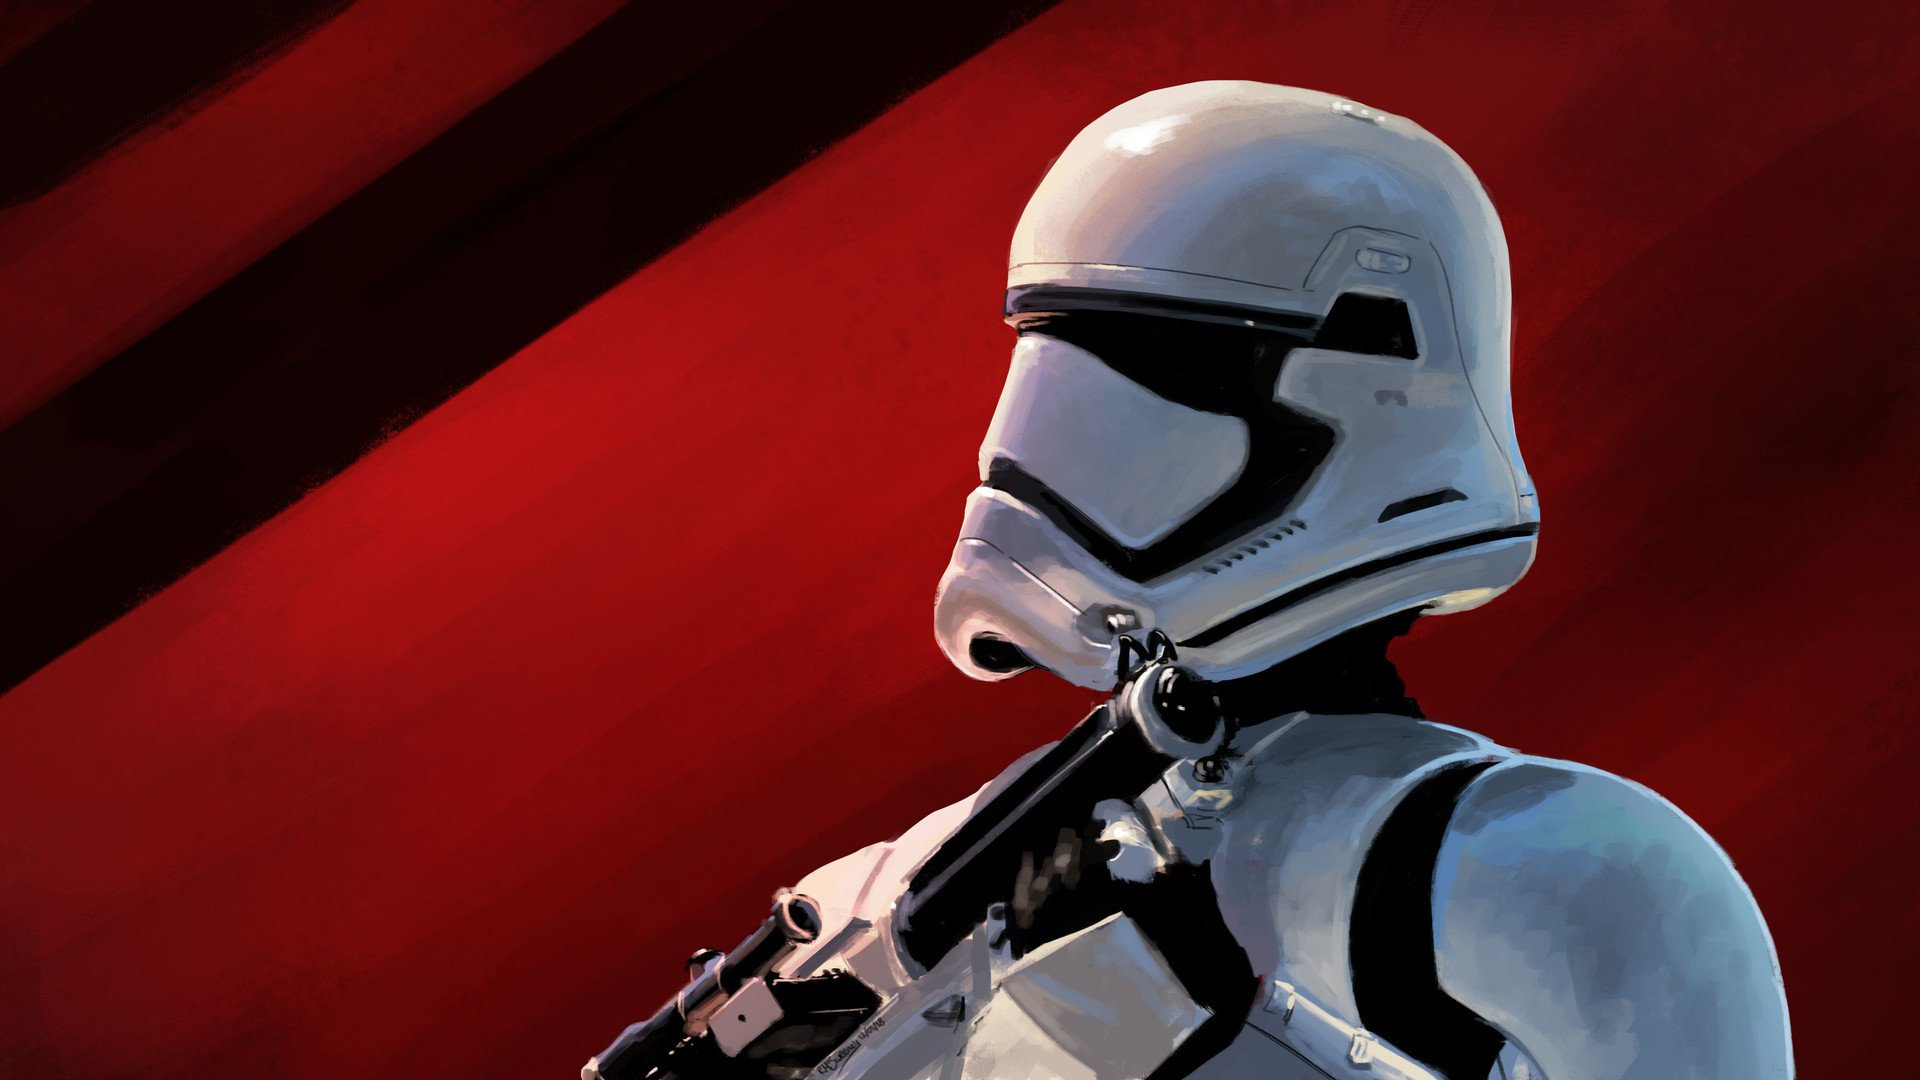 First Order Stormtrooper Hd Wallpaper Background Image 1920x1080 Id 1064309 Wallpaper Abyss